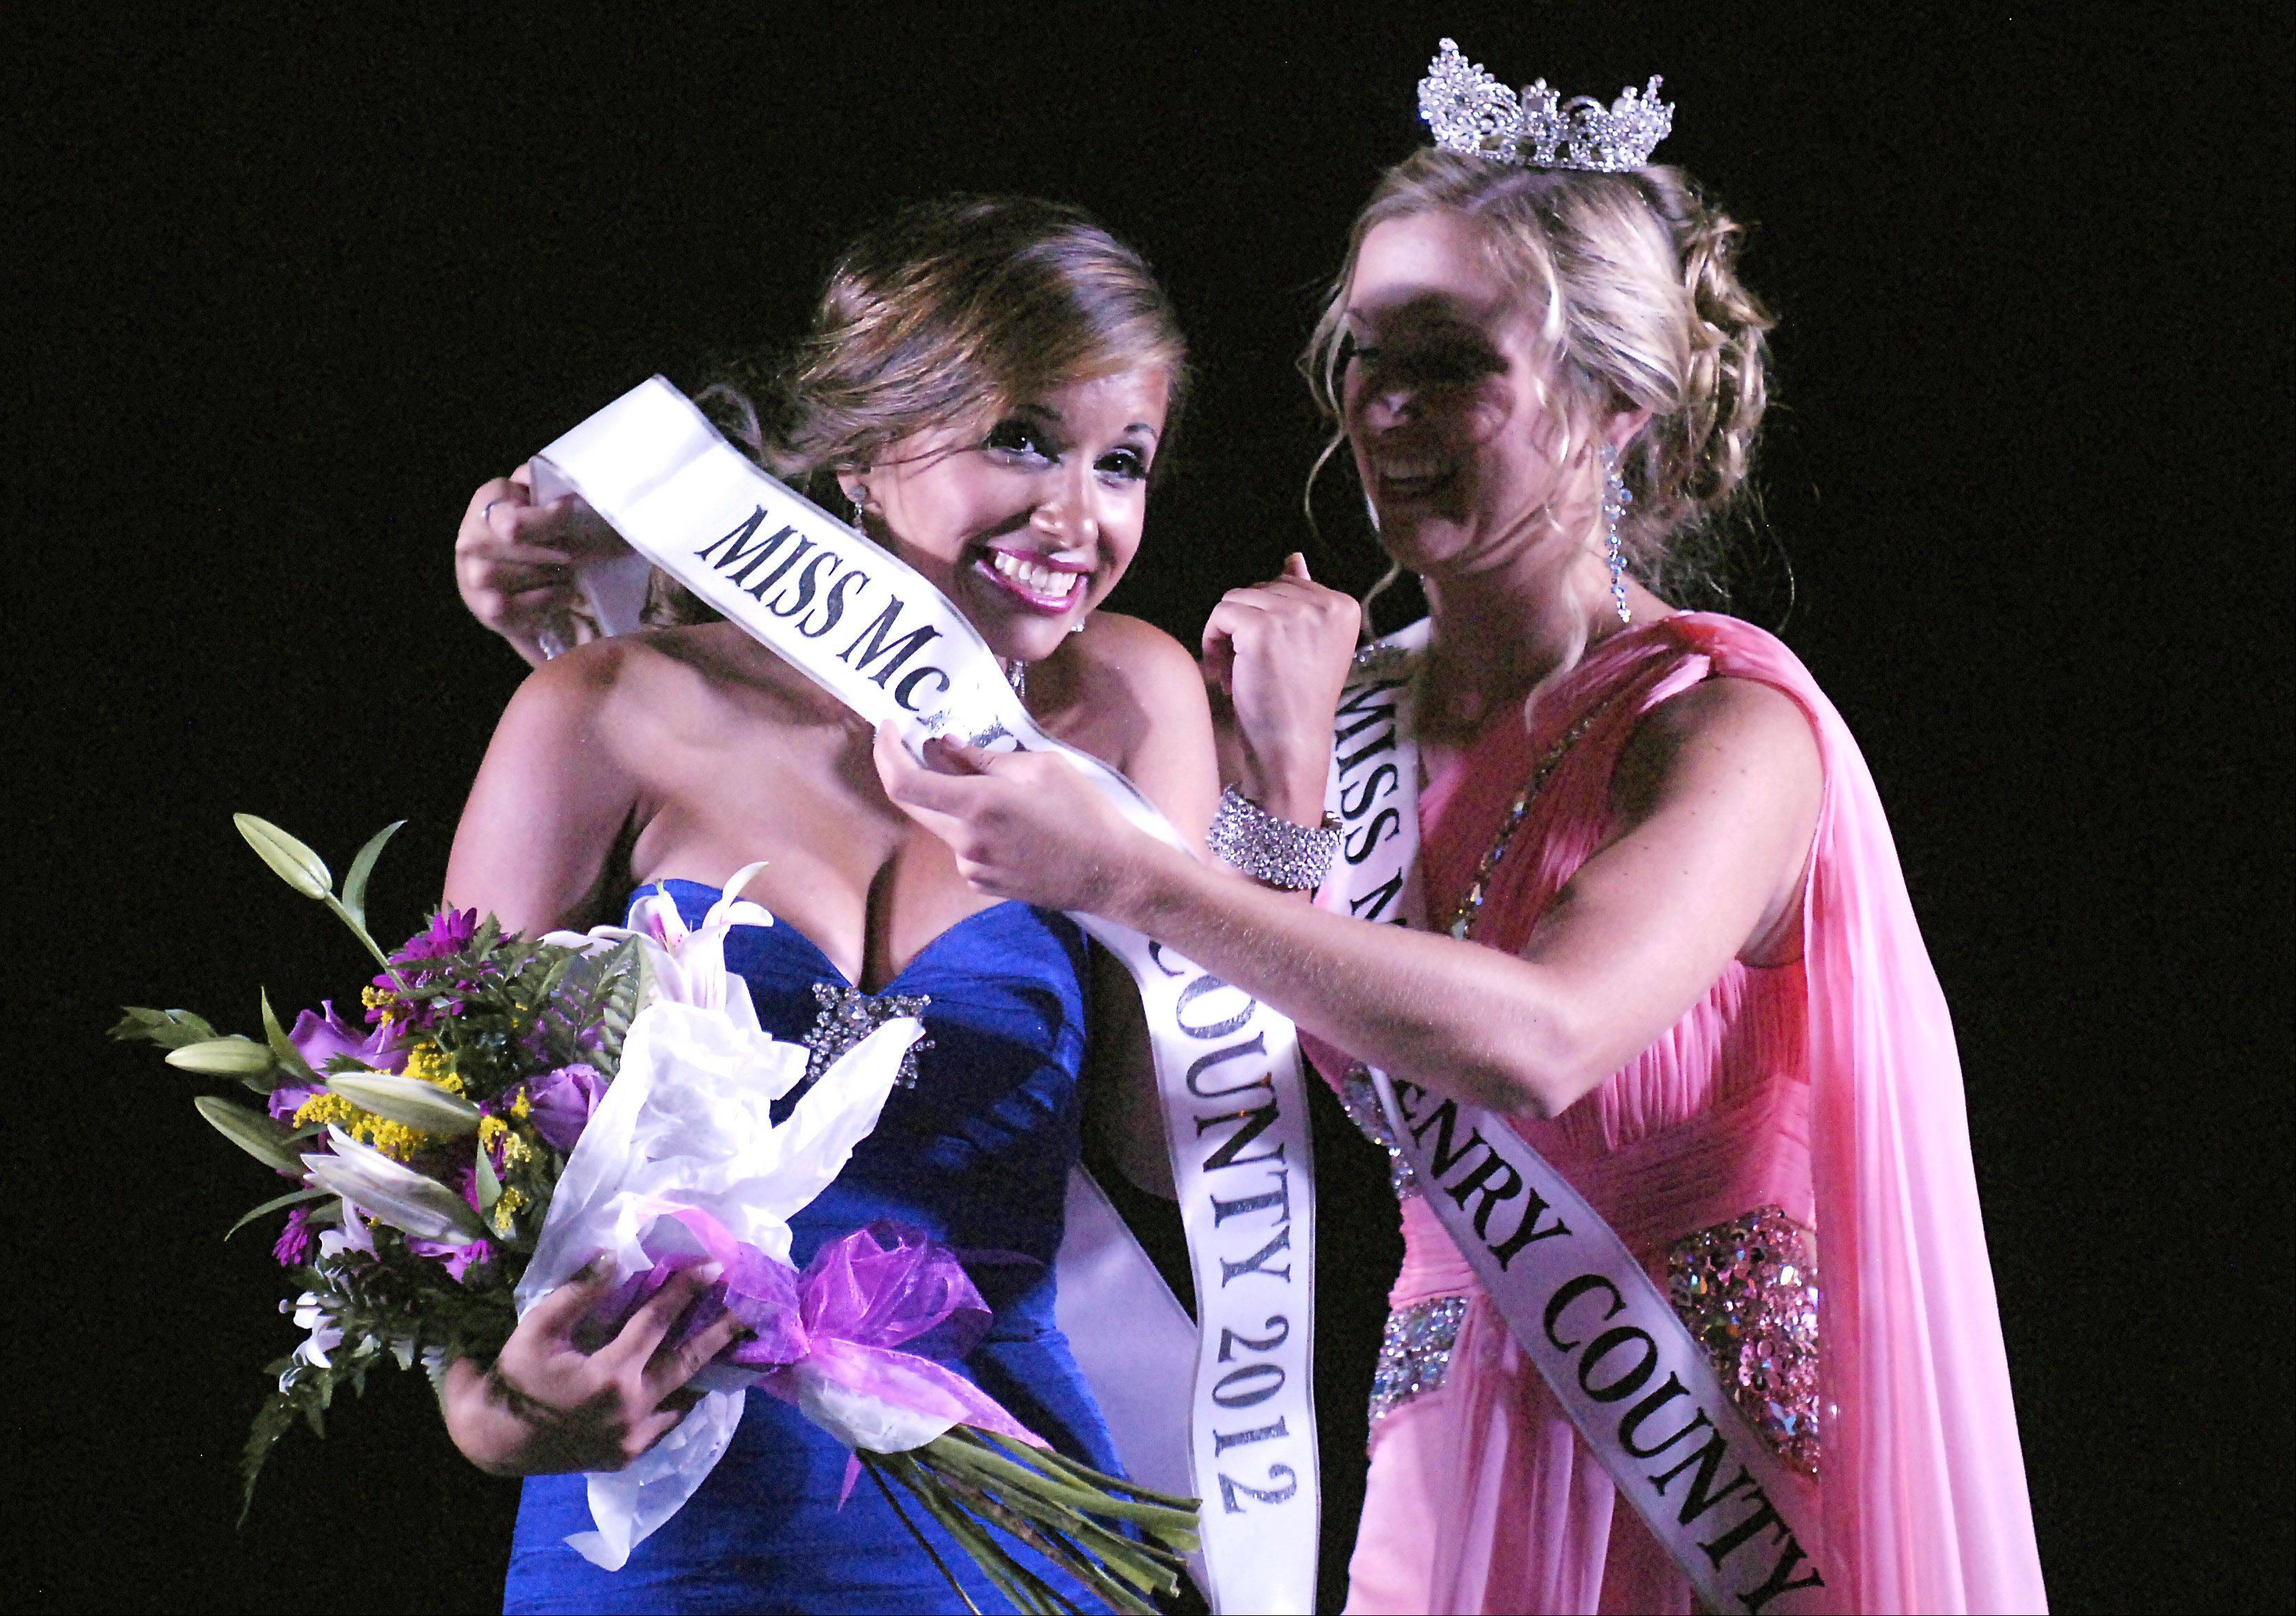 2011 McHenry County Queen Jordyn Butler helps Samantha Bolet, 17, of Lake in the Hills with her sash after Bolet was announced the 2012 Miss McHenry County.